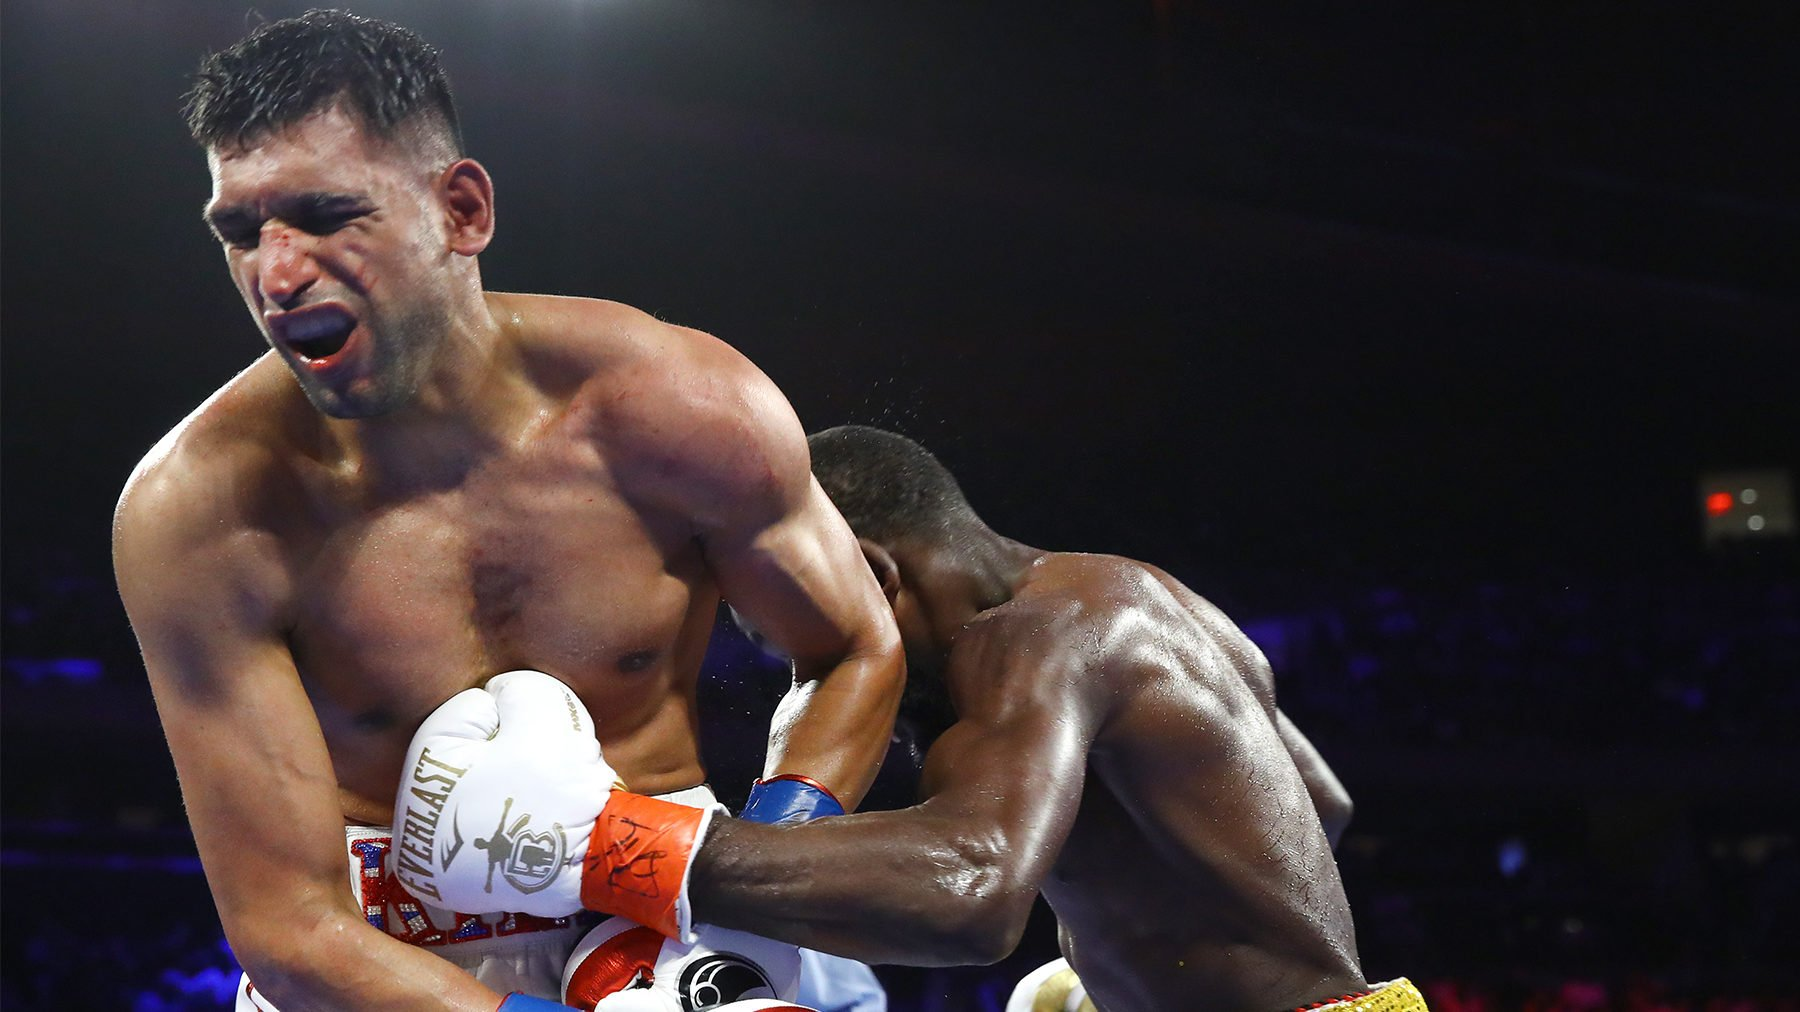 Khan Discusses After-Effects of Low Blow - Fit World Sport News